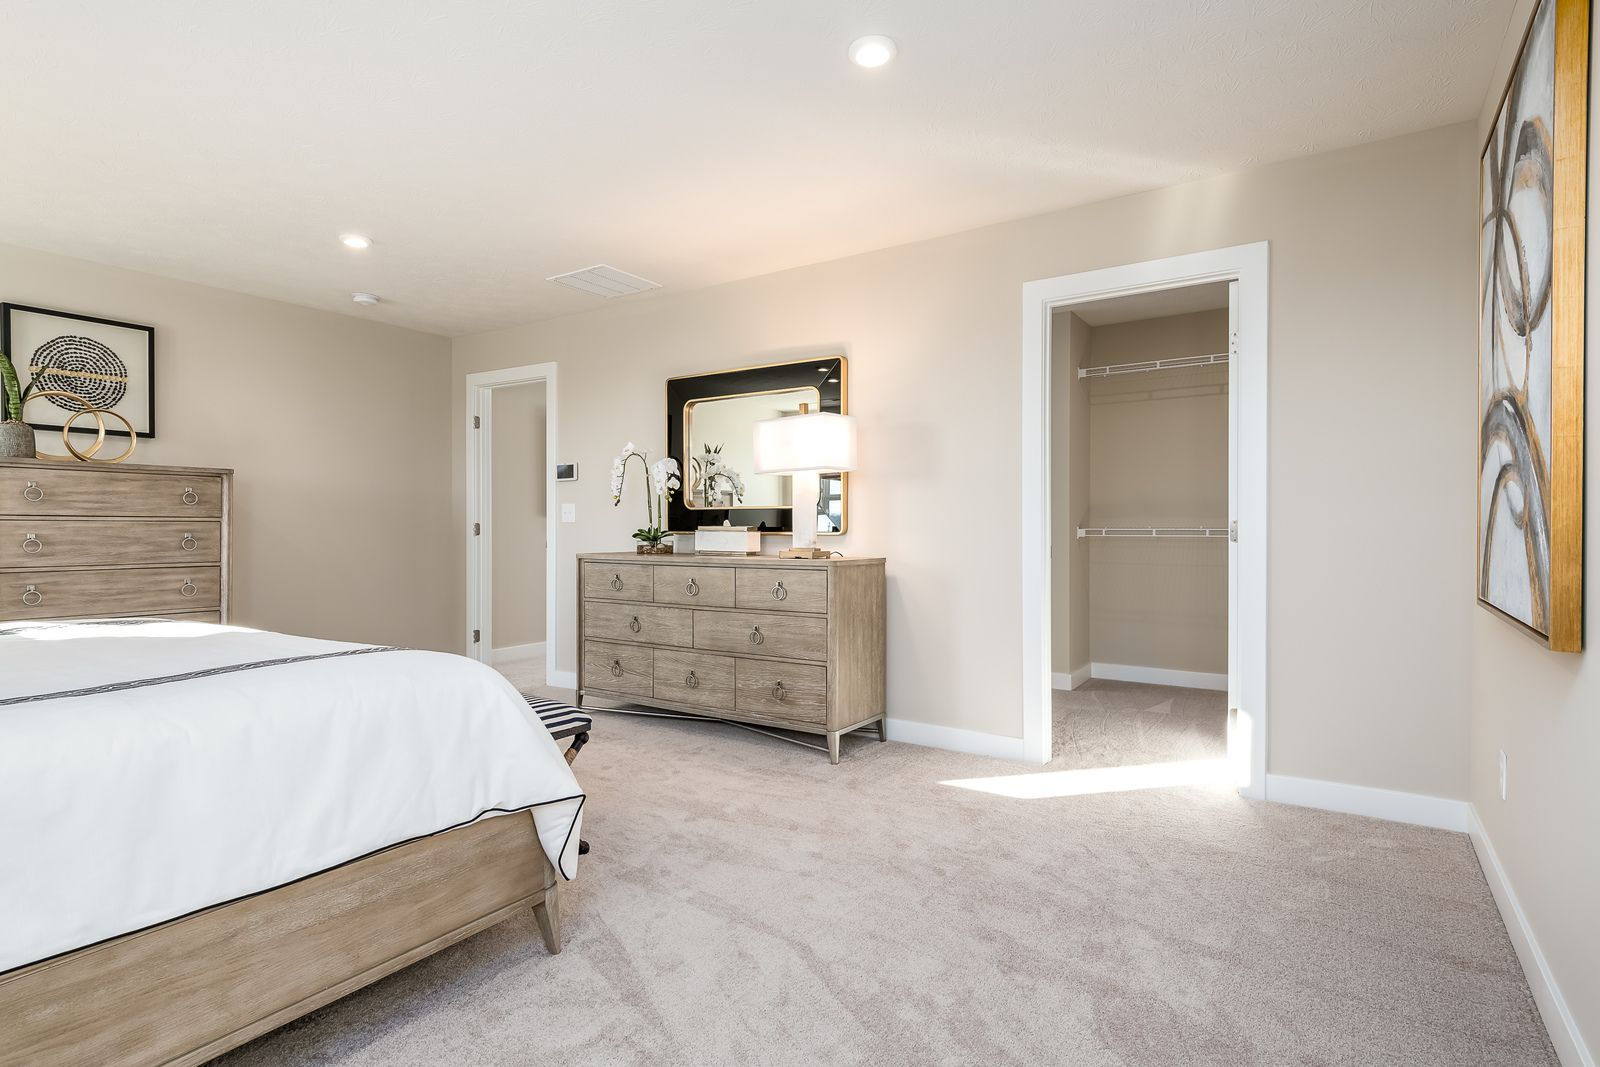 Bedroom featured in the Hudson By Ryan Homes in Ocean City, MD